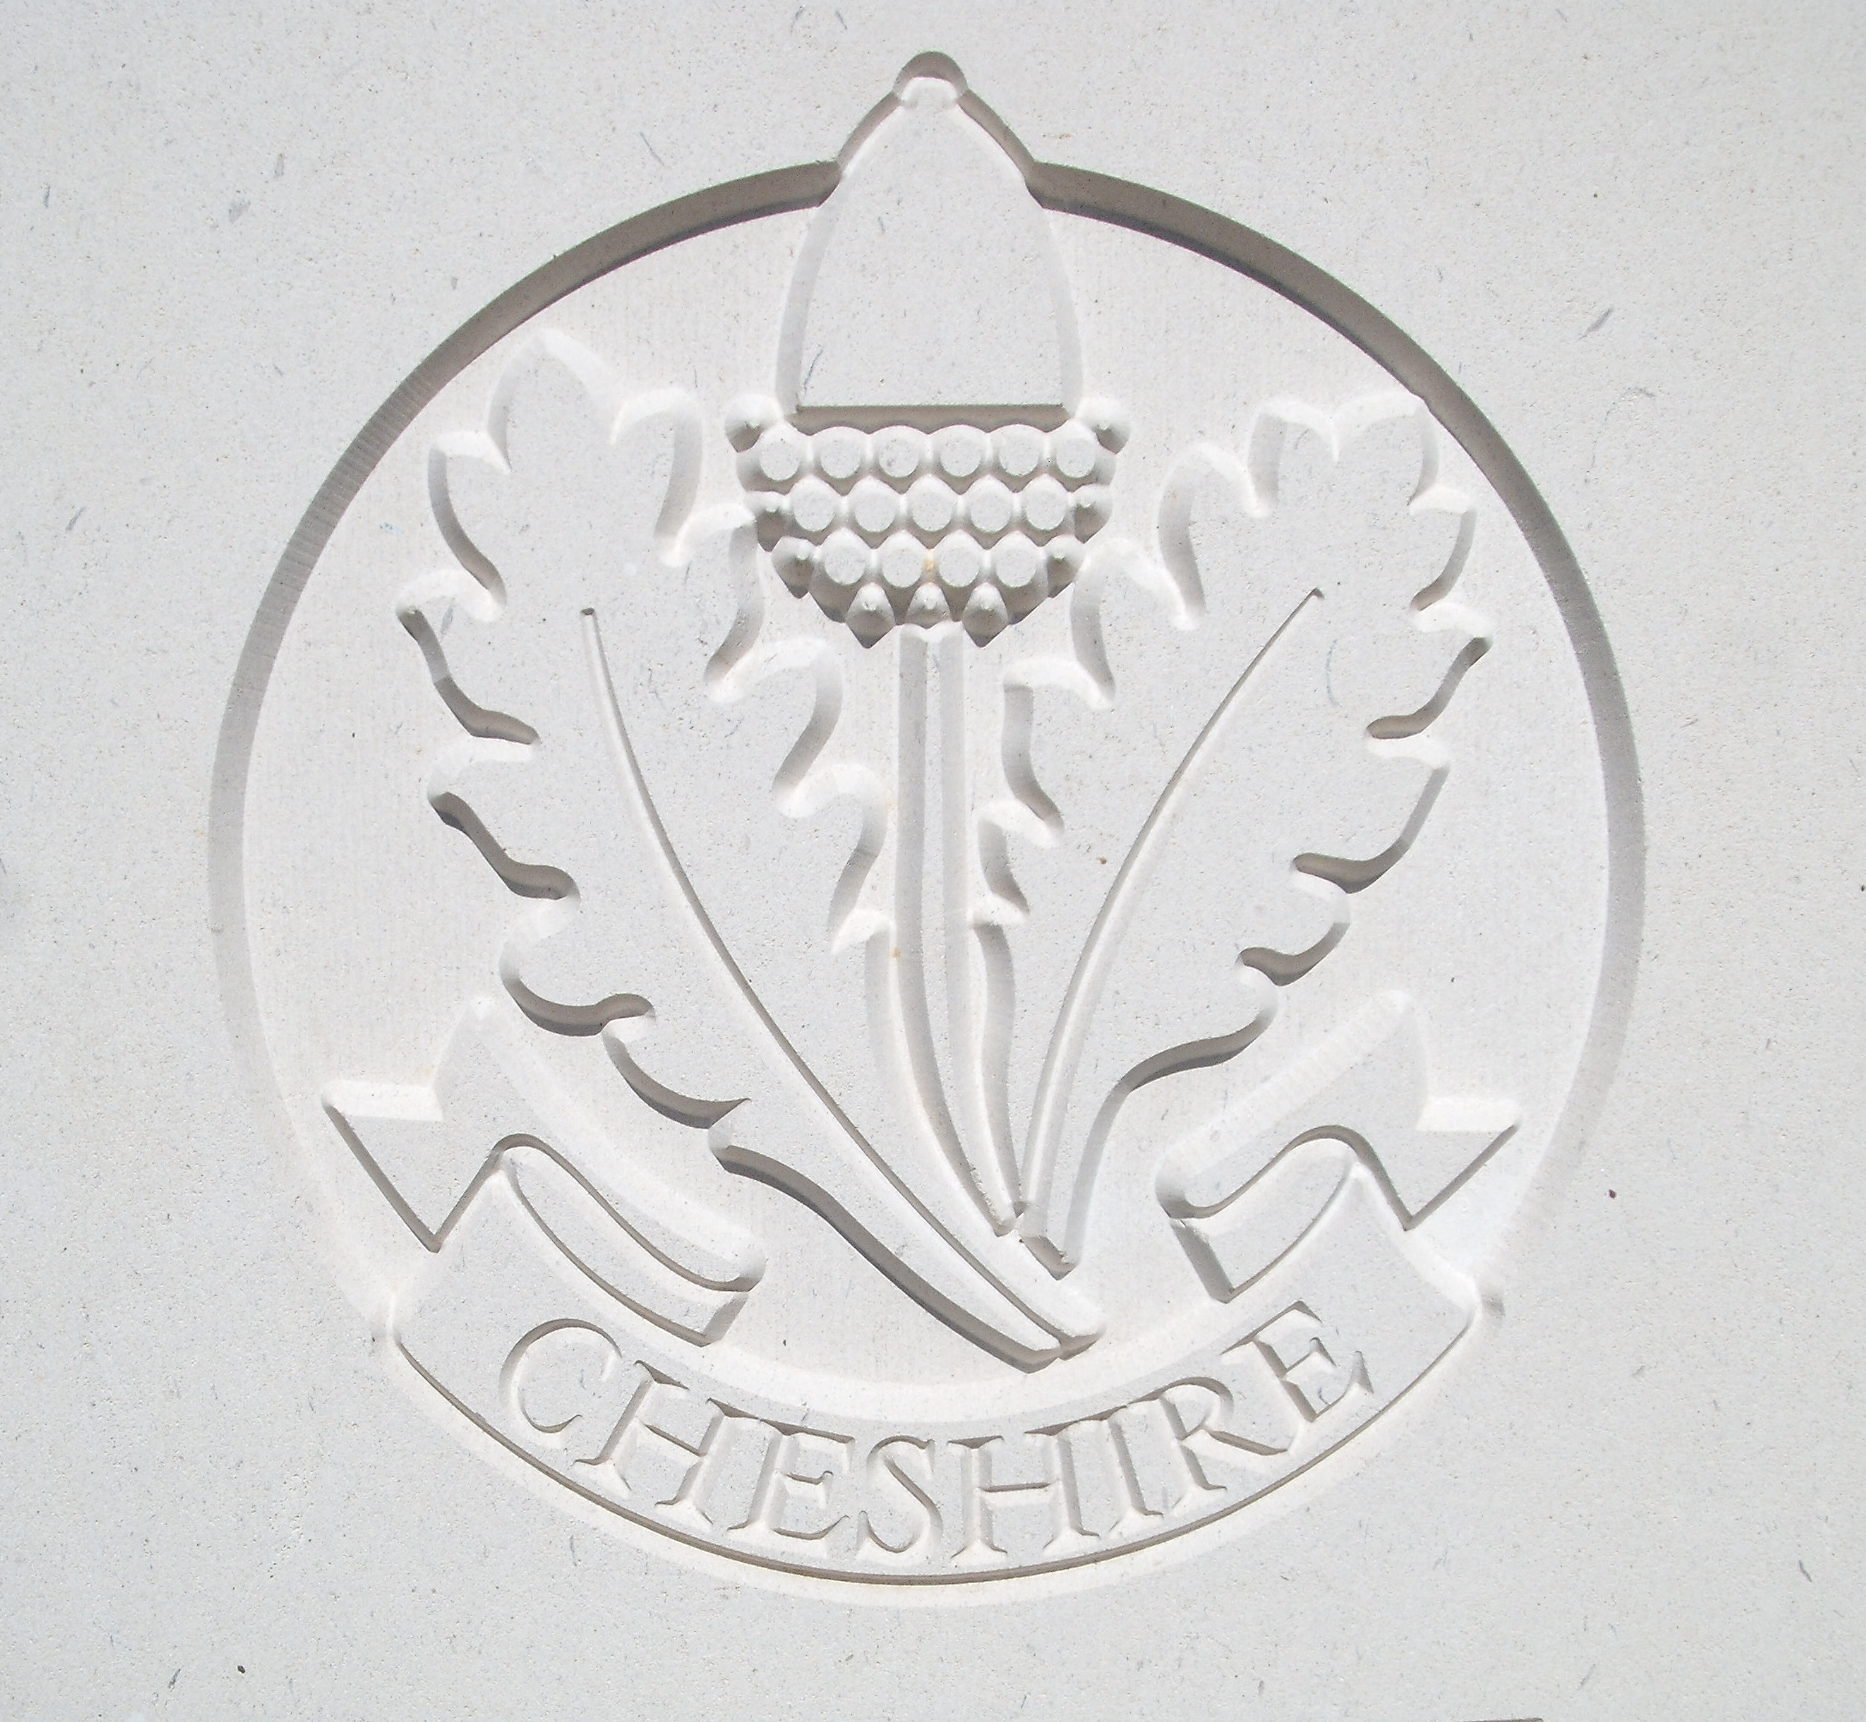 Capbadge of the Cheshire Regiment